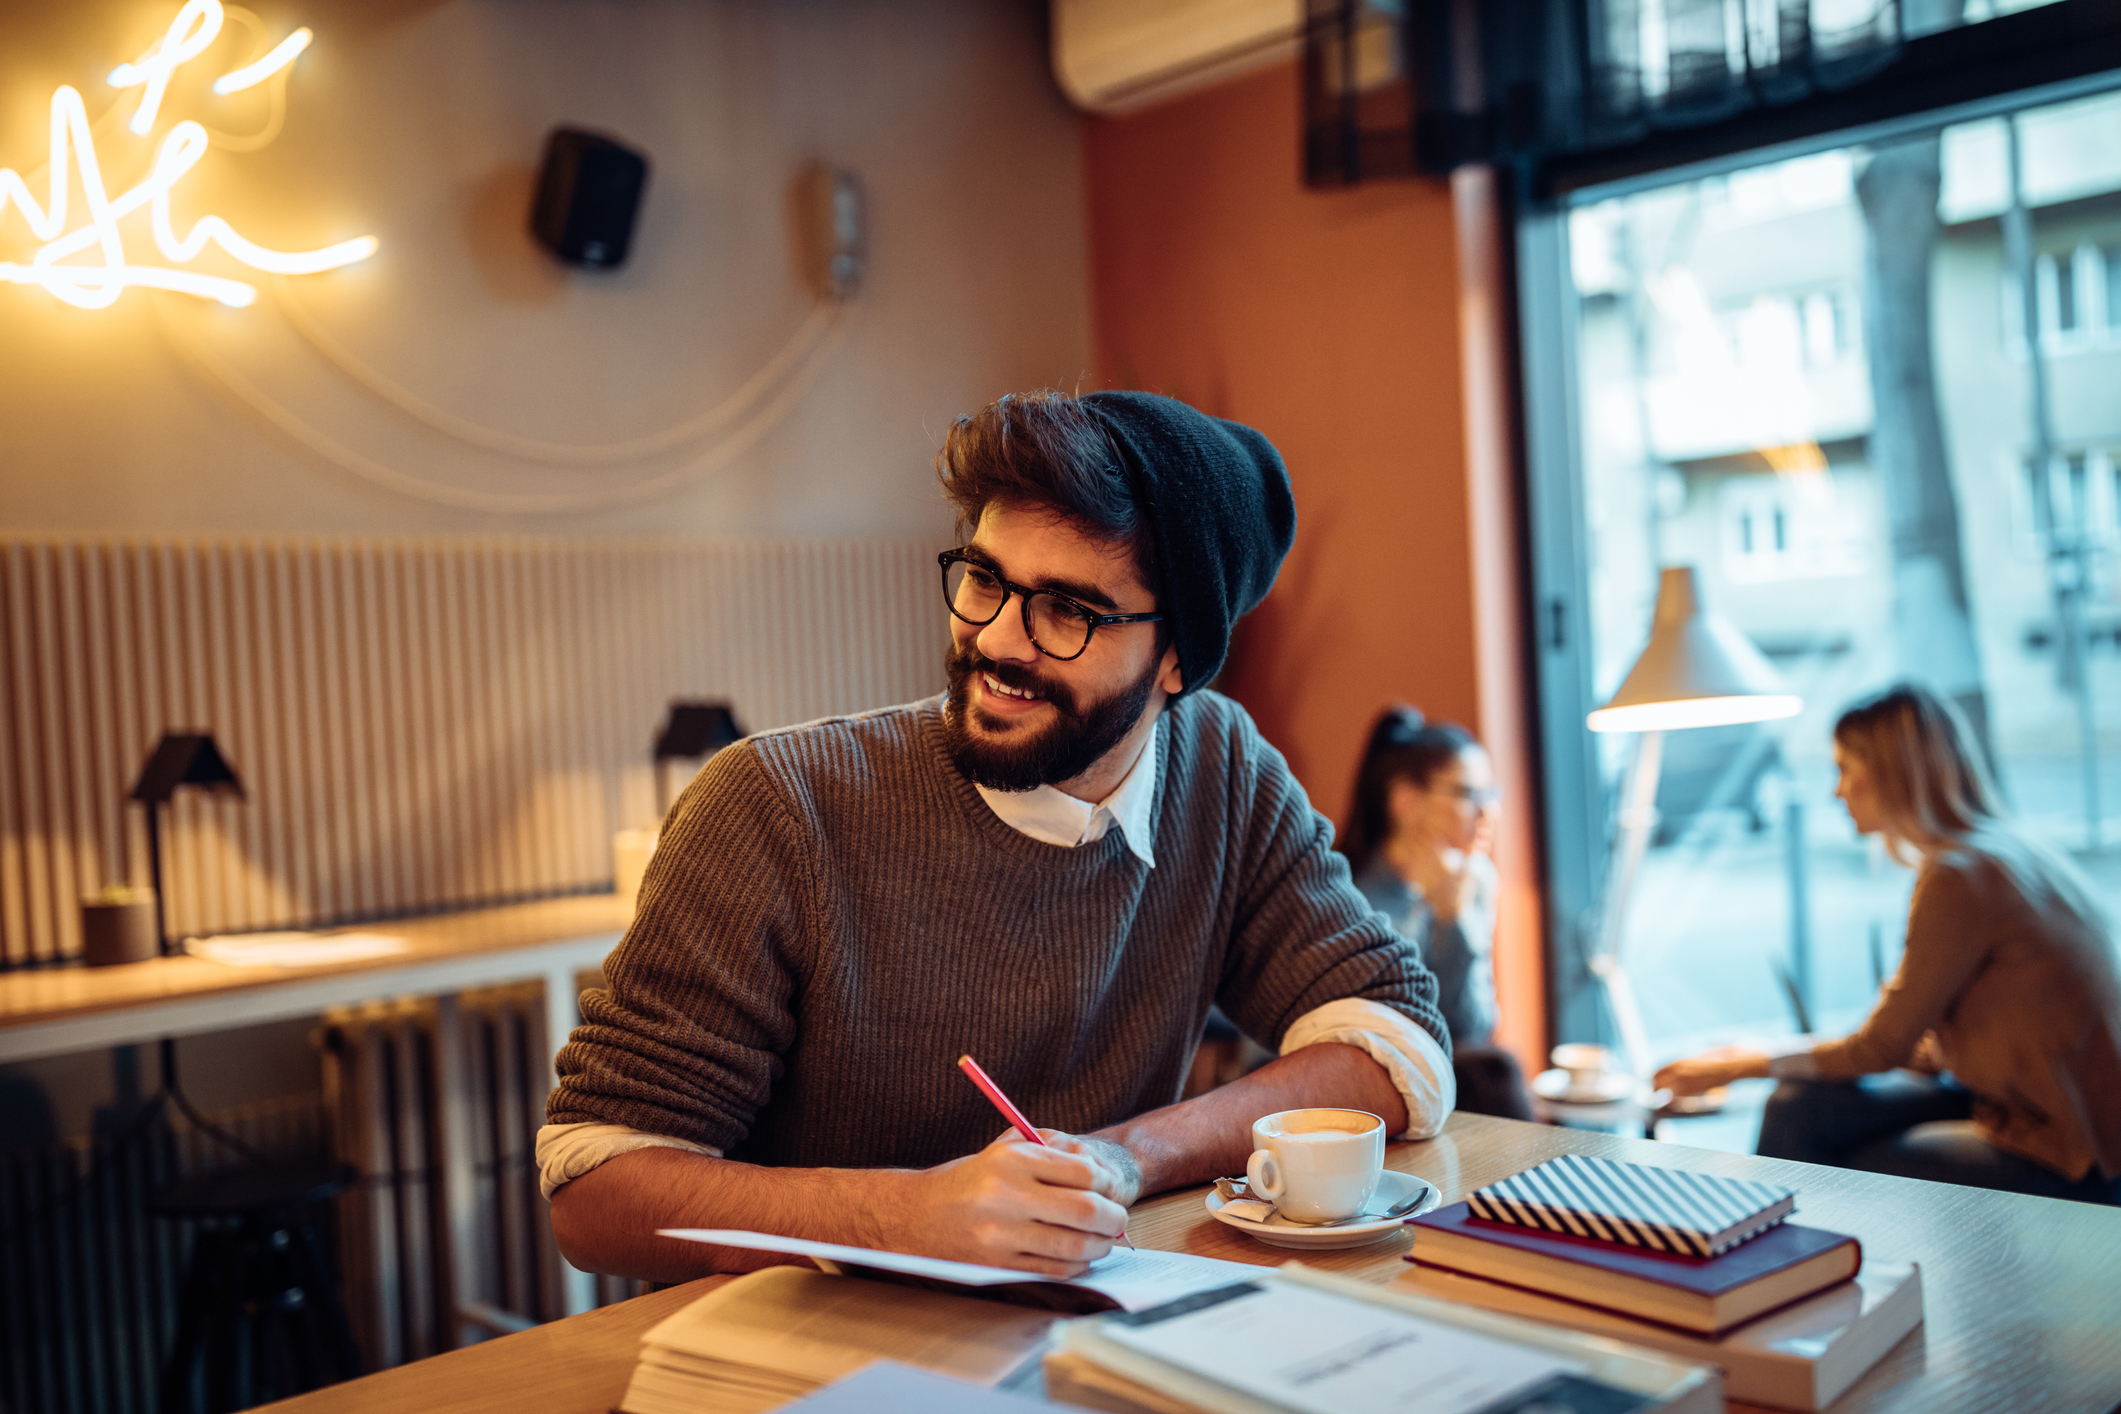 Young man studying in a coffee shop